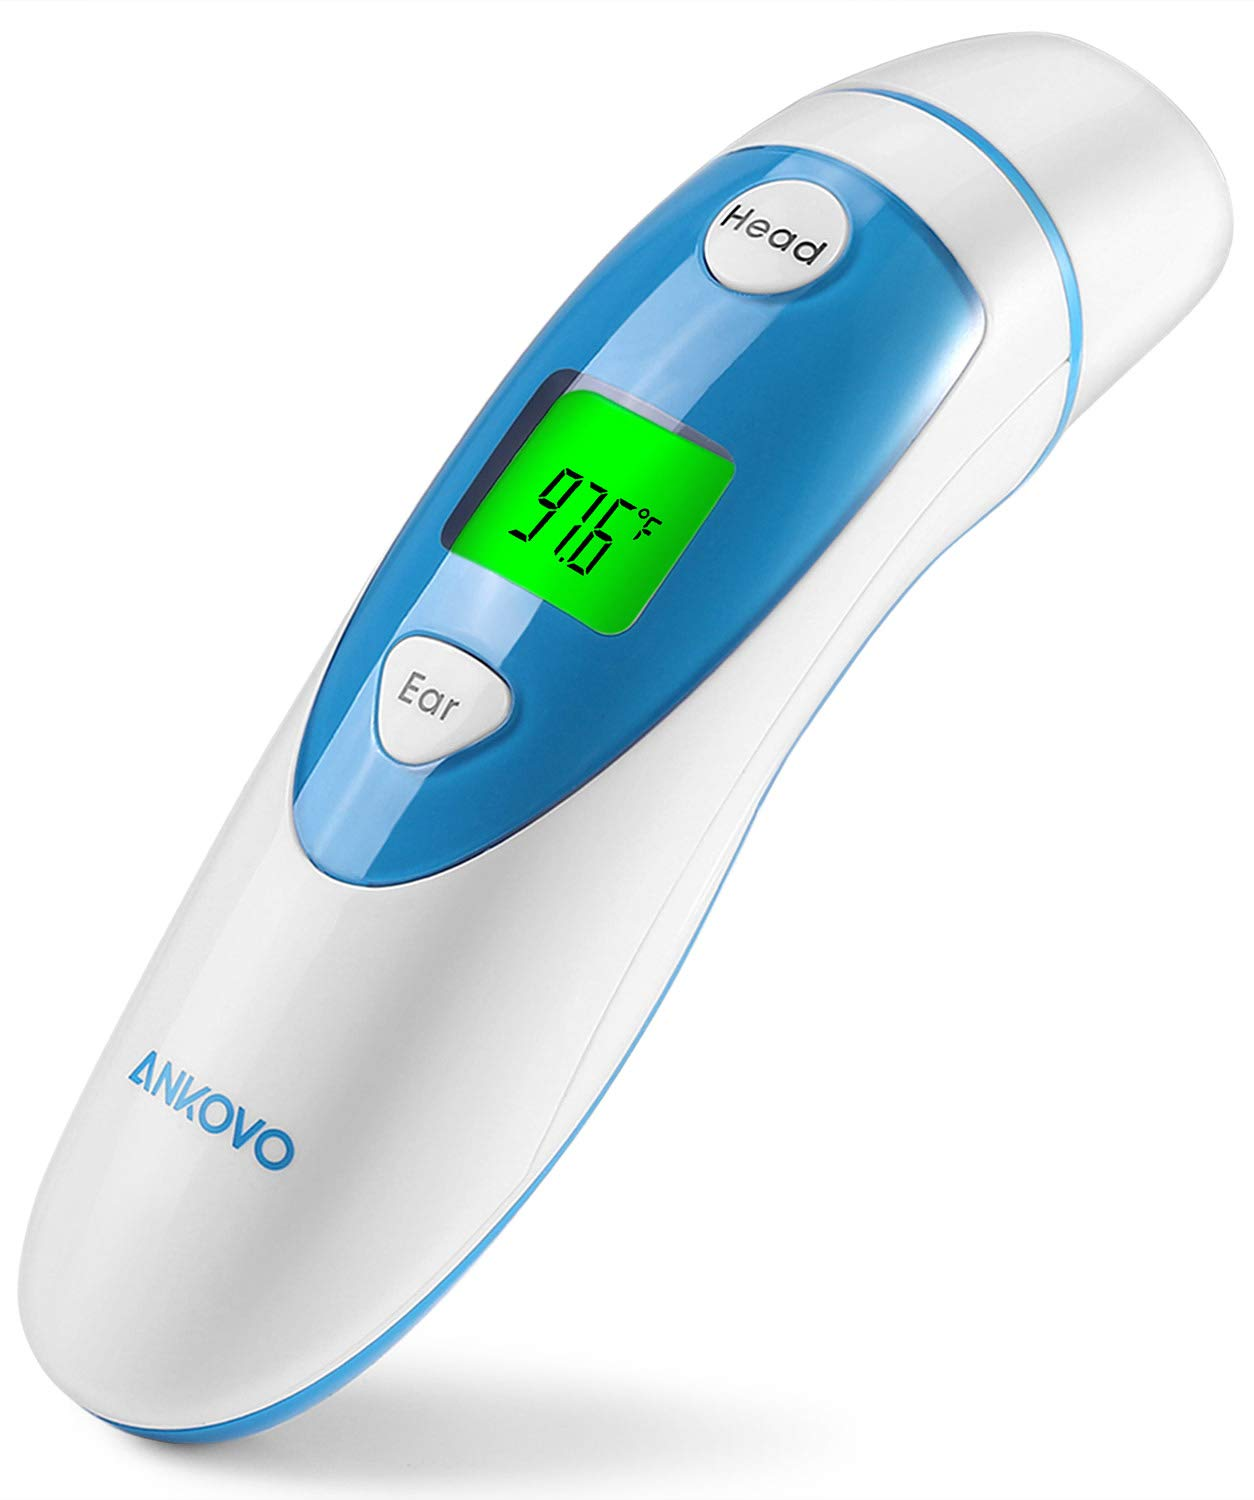 ANKOVO Medical Forehead and Ear Thermometer,Infrared Digital Thermometer Suitable for Baby, Infant, Toddler and Adults with FDA and CE Approved